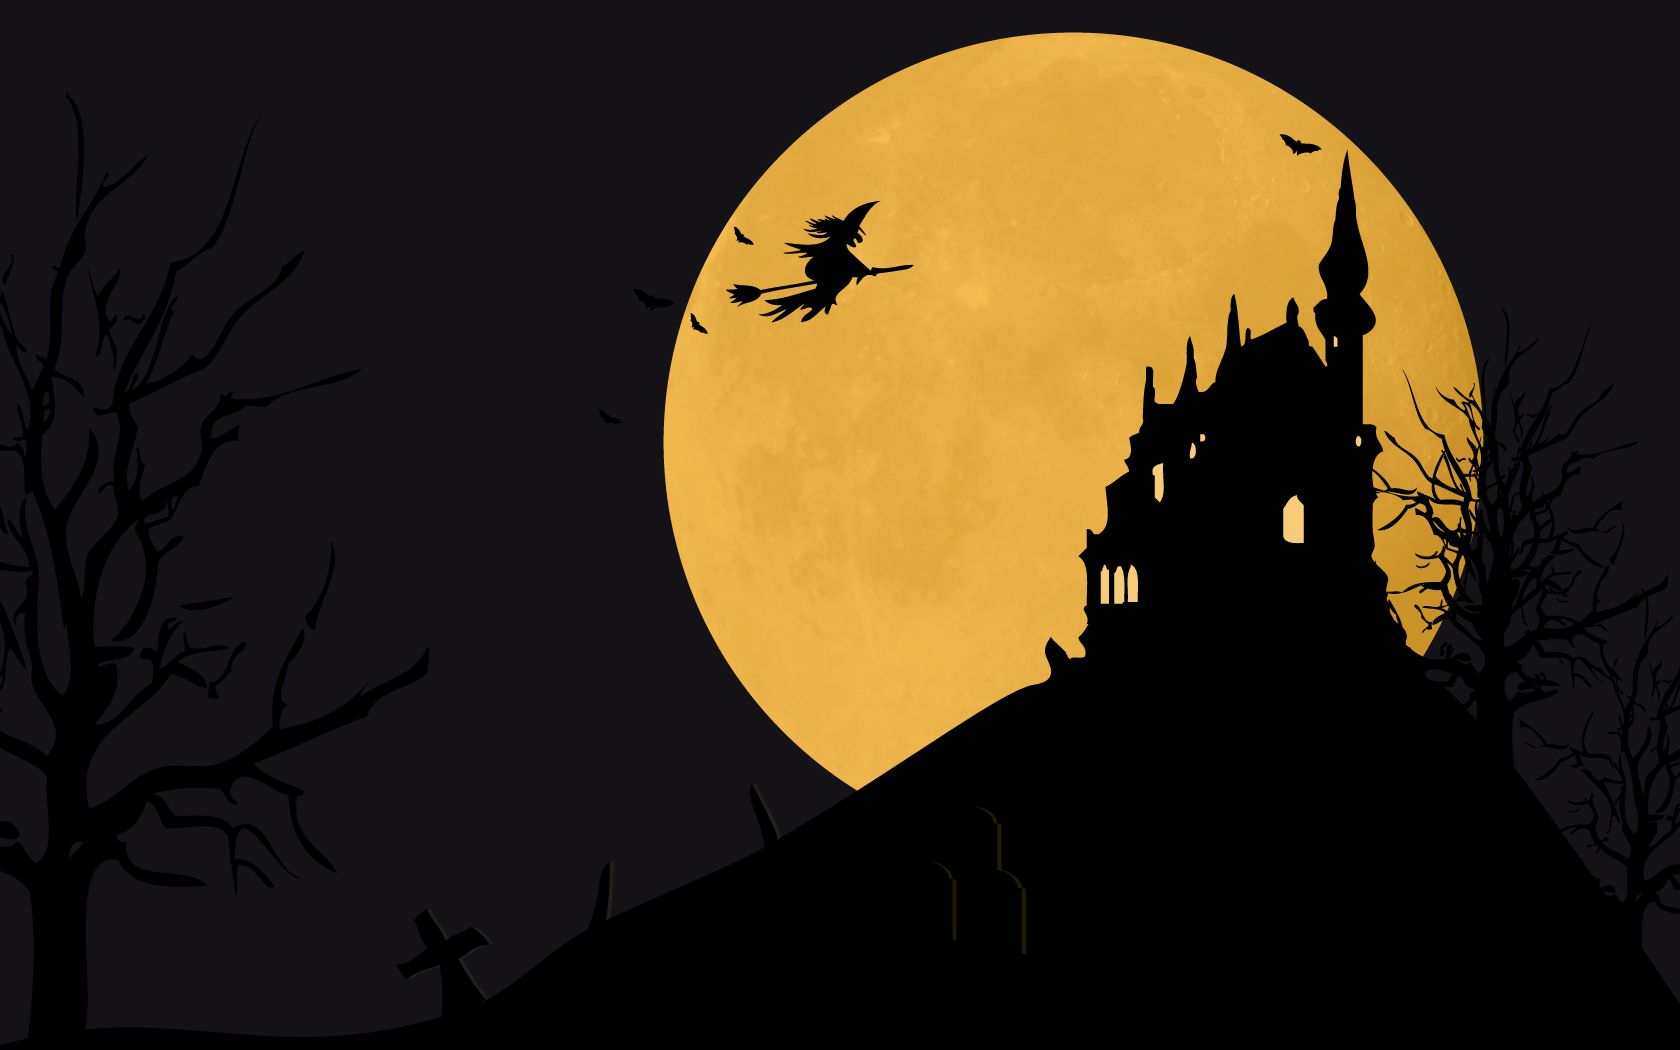 Halloween Wallpapers Hd Fondos De Halloween Imagenes De